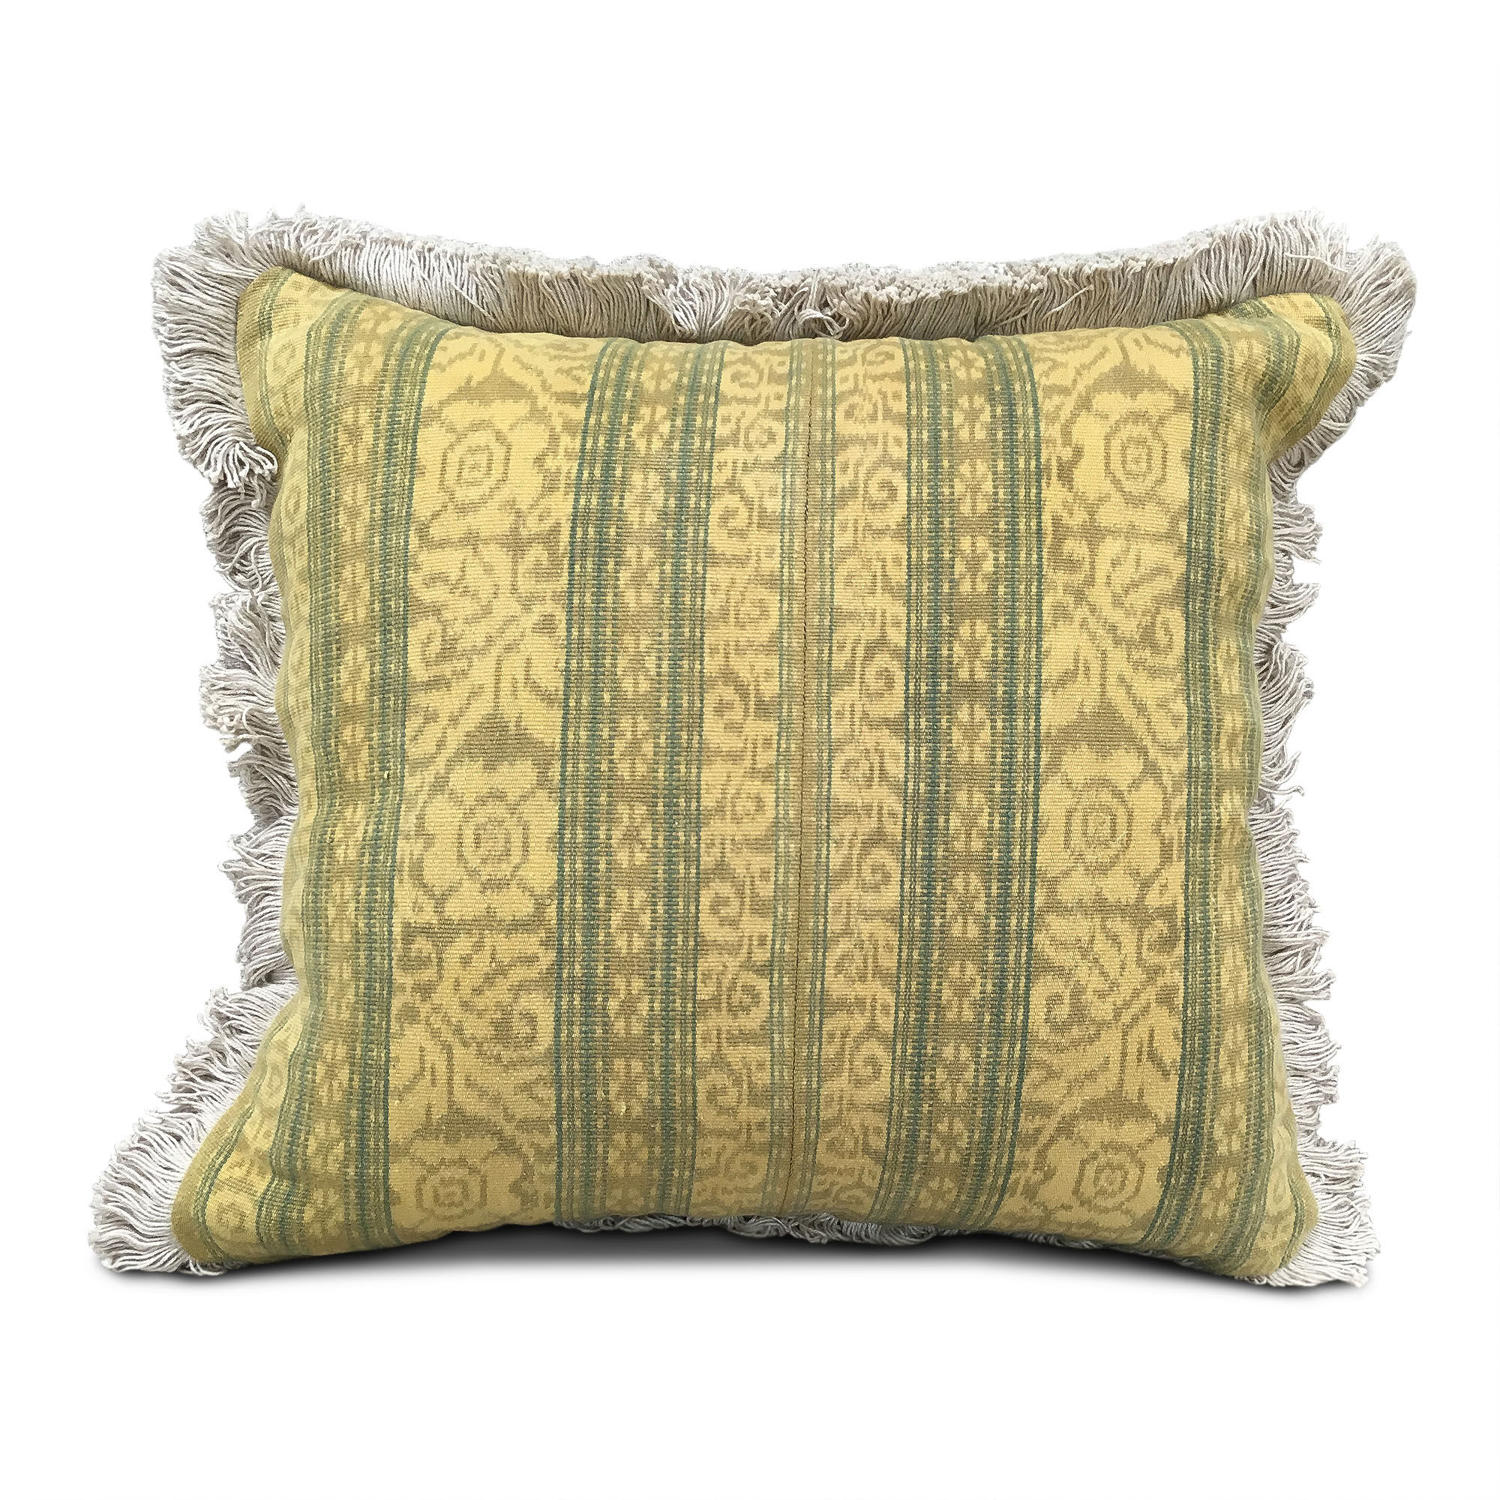 Mustard Ikat Cushions with Fringe